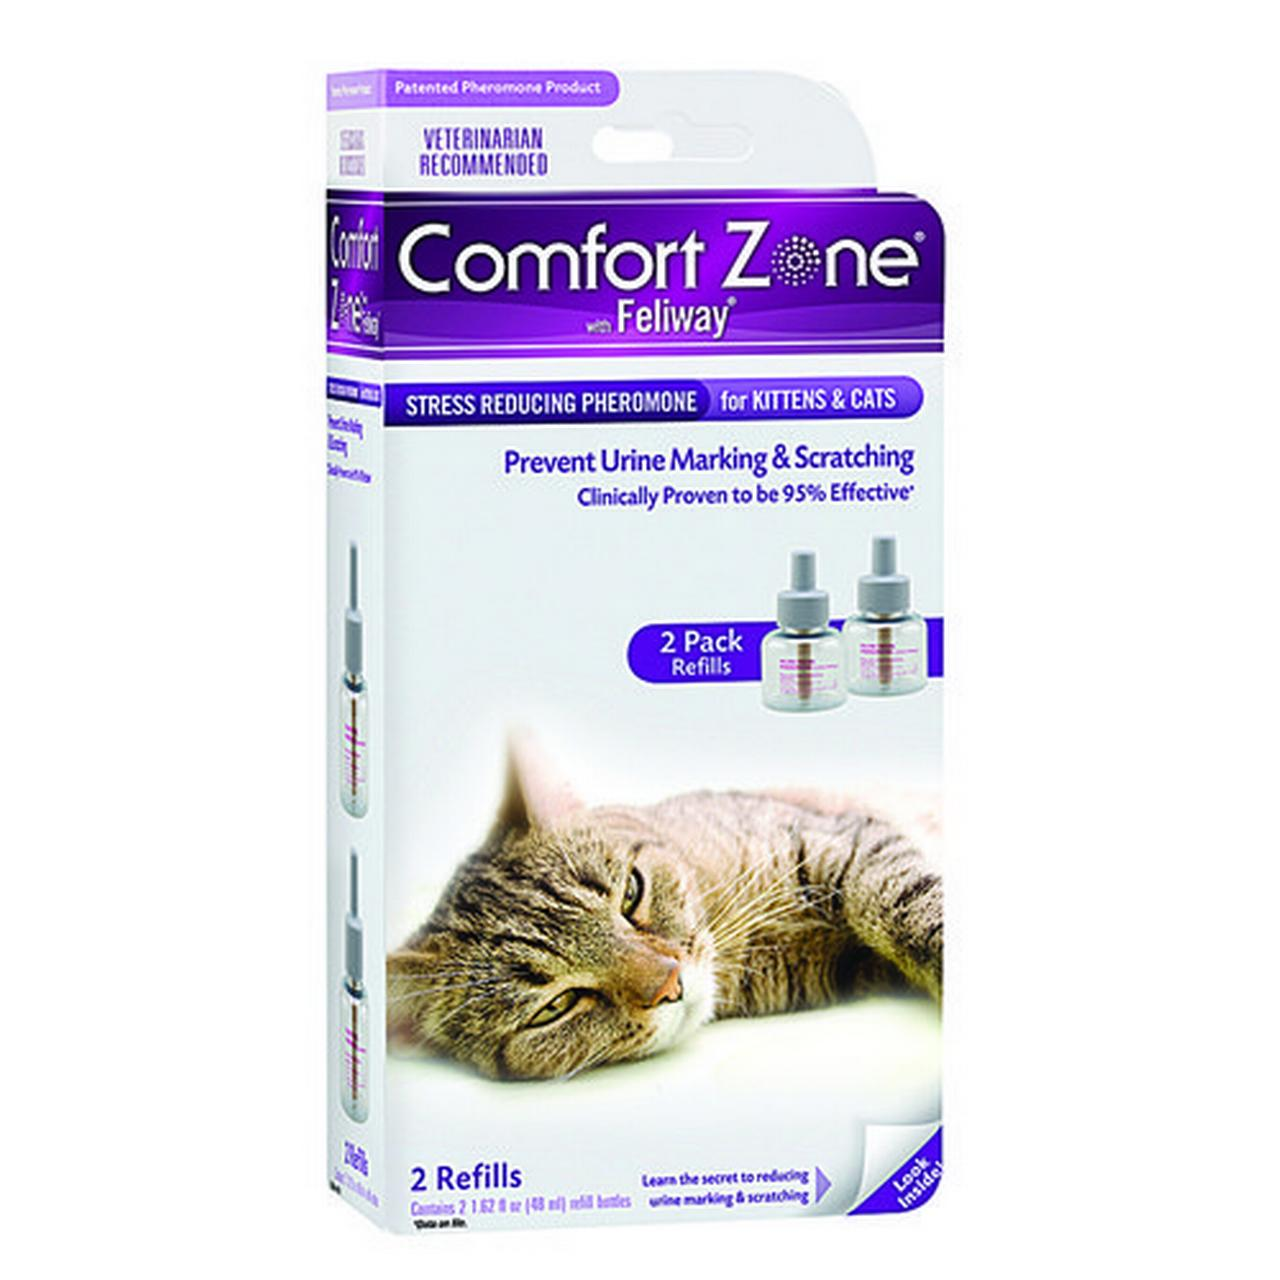 Comfort Zone with Feliway Stress Reducing Pheromone Refill for Kittens & Cats 2 Pack - (2 x 48 mL/1.62 oz bottles)